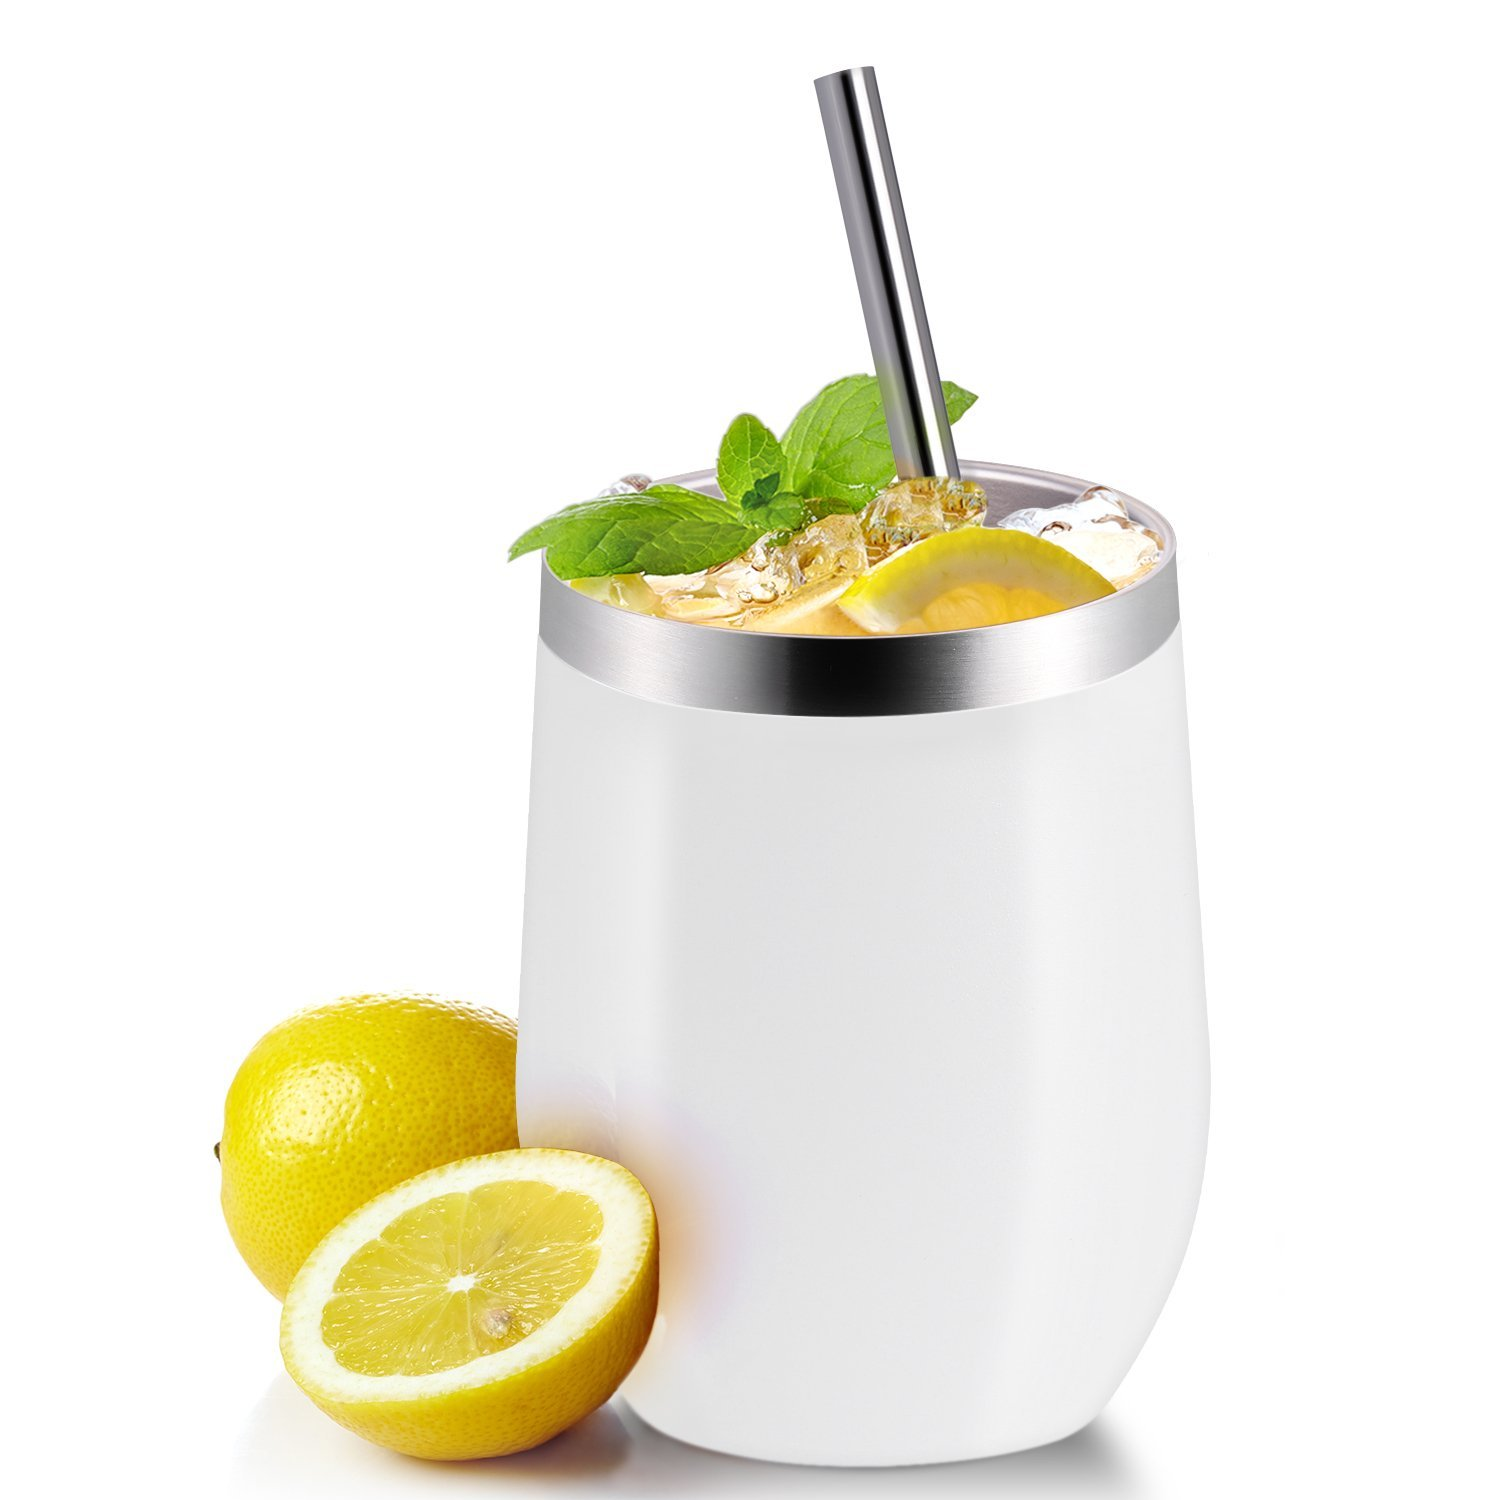 Drinks 2 Sets Champagne Cocktails GRIND WHITE Stainless Steel Tumbler Cup with Lids and Straws for Wine Coffee Skylety 12 oz Double-insulated Wine Tumbler